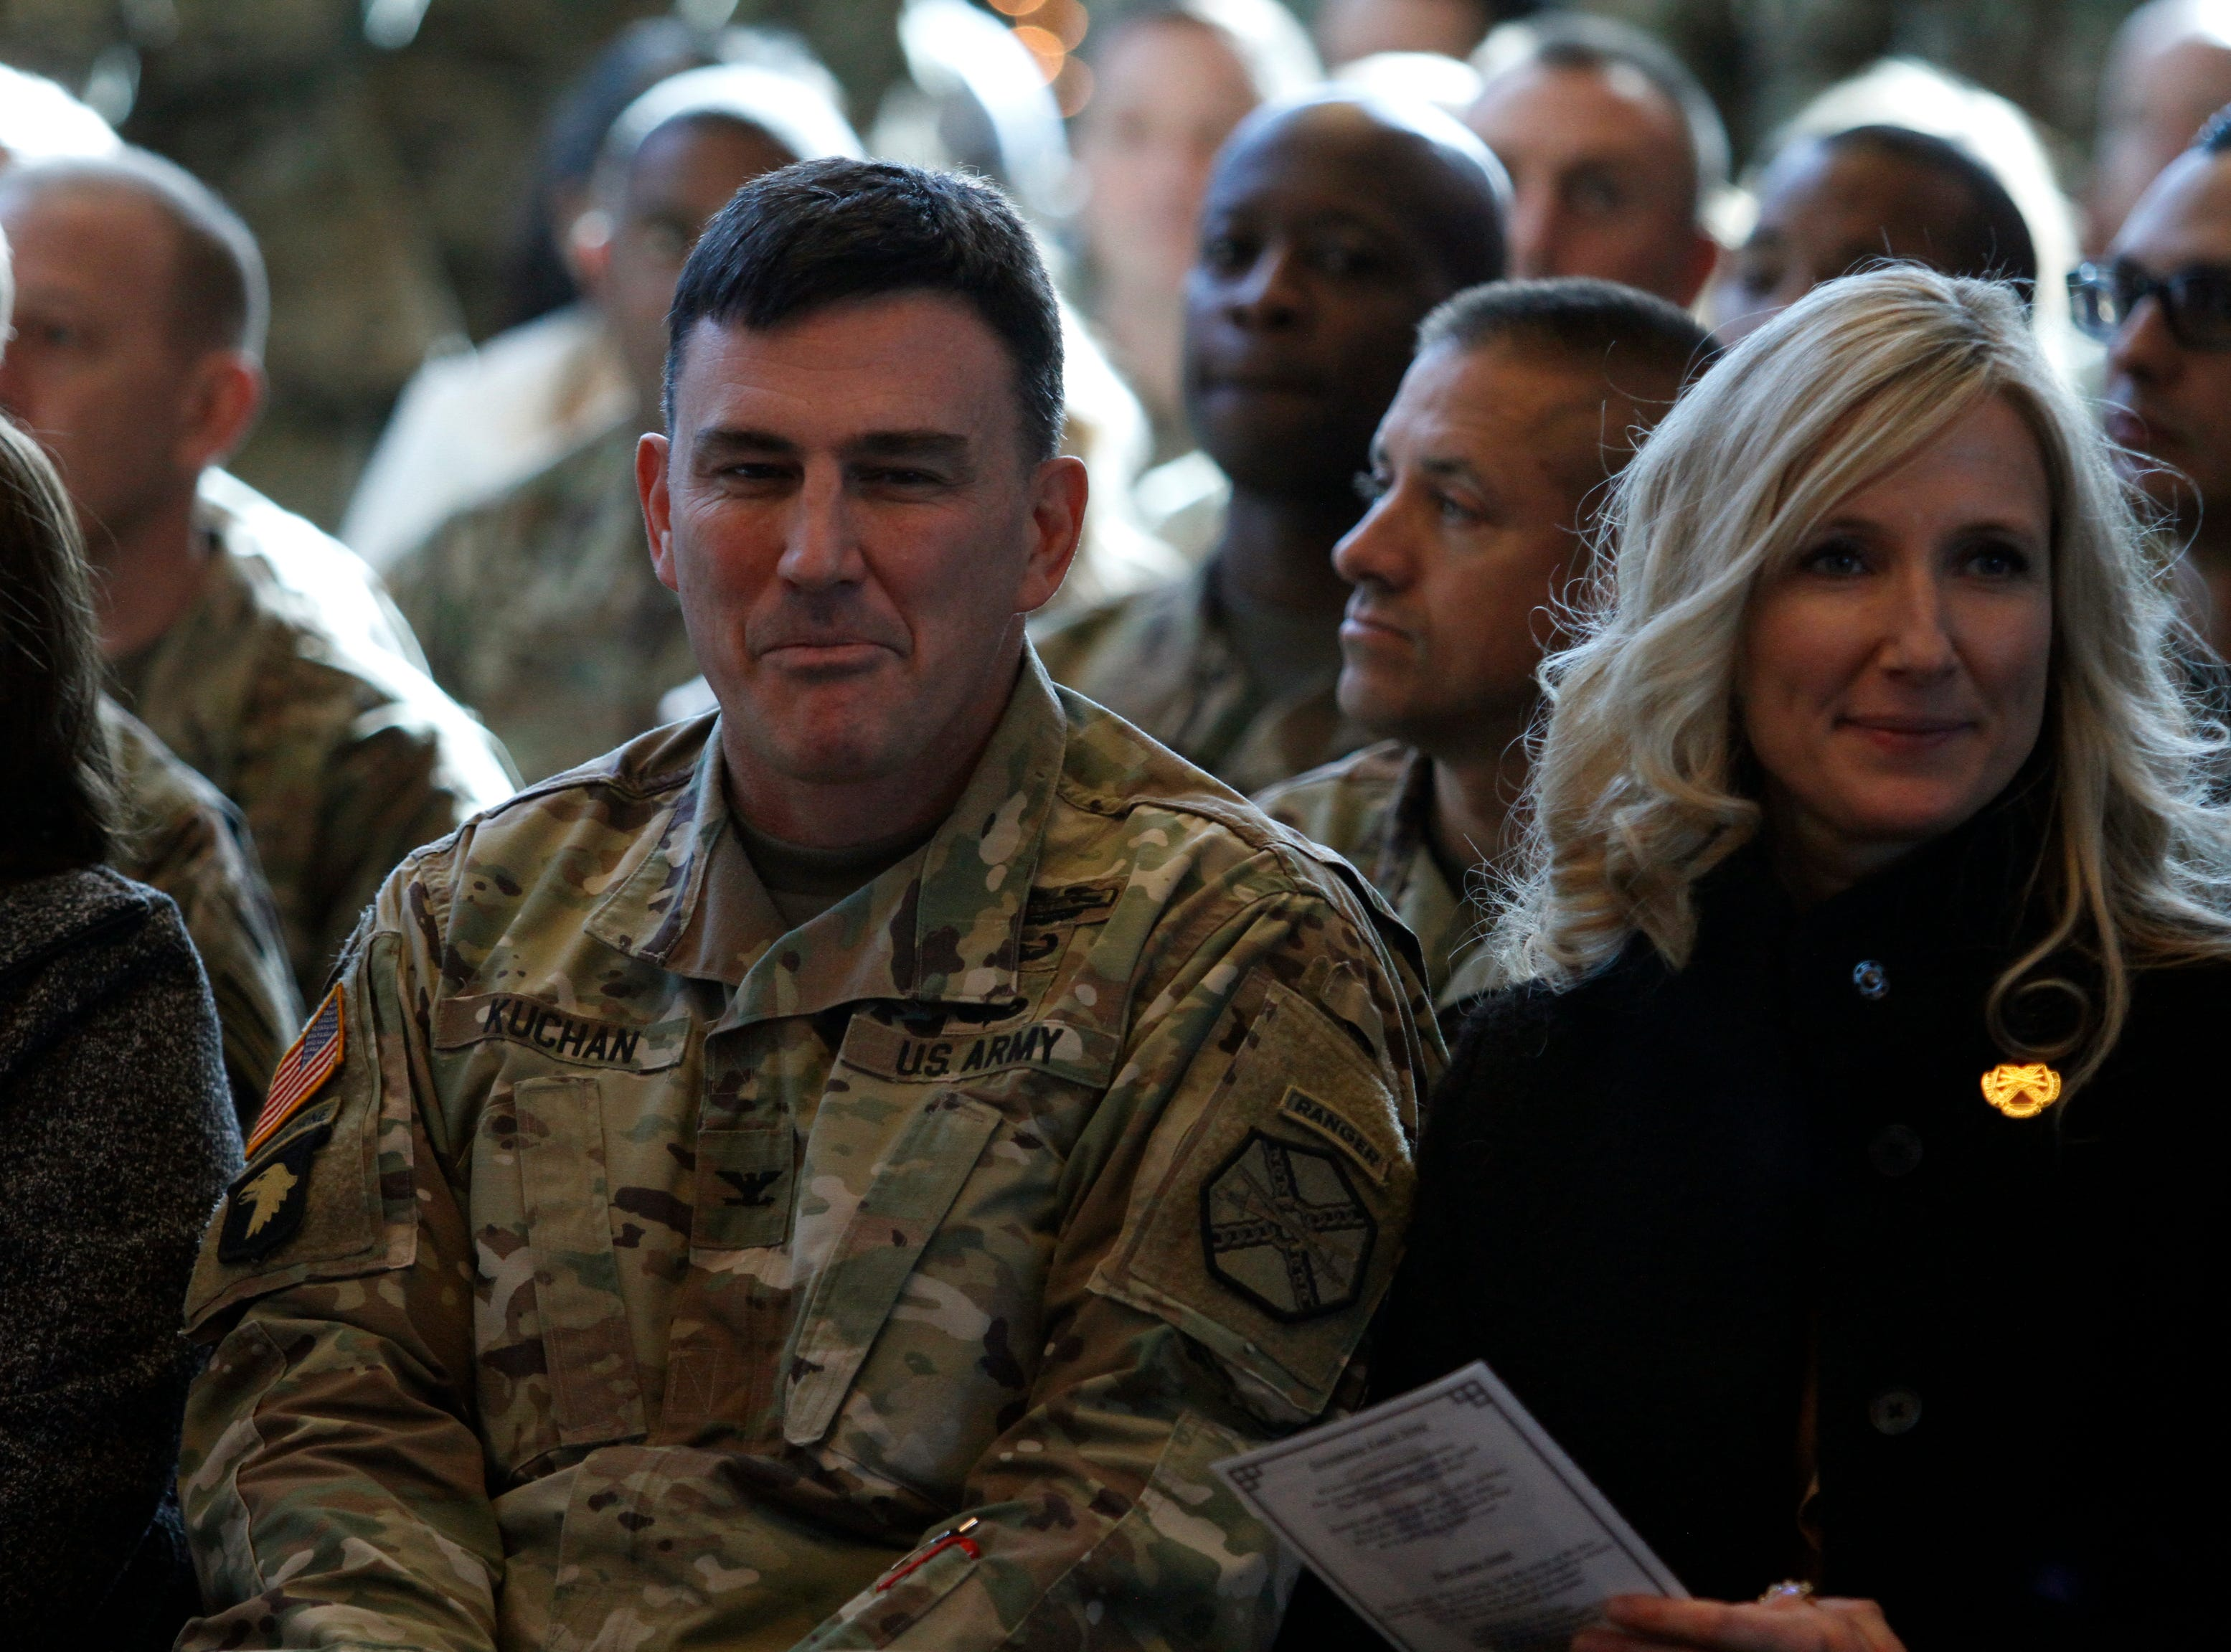 Col. Joe Kuchan and Sarah Kuchan at the uncasing of the 101st Airborne Division colors following its Afghanistan deployment, on Wednesday, Dec. 19, 2018.